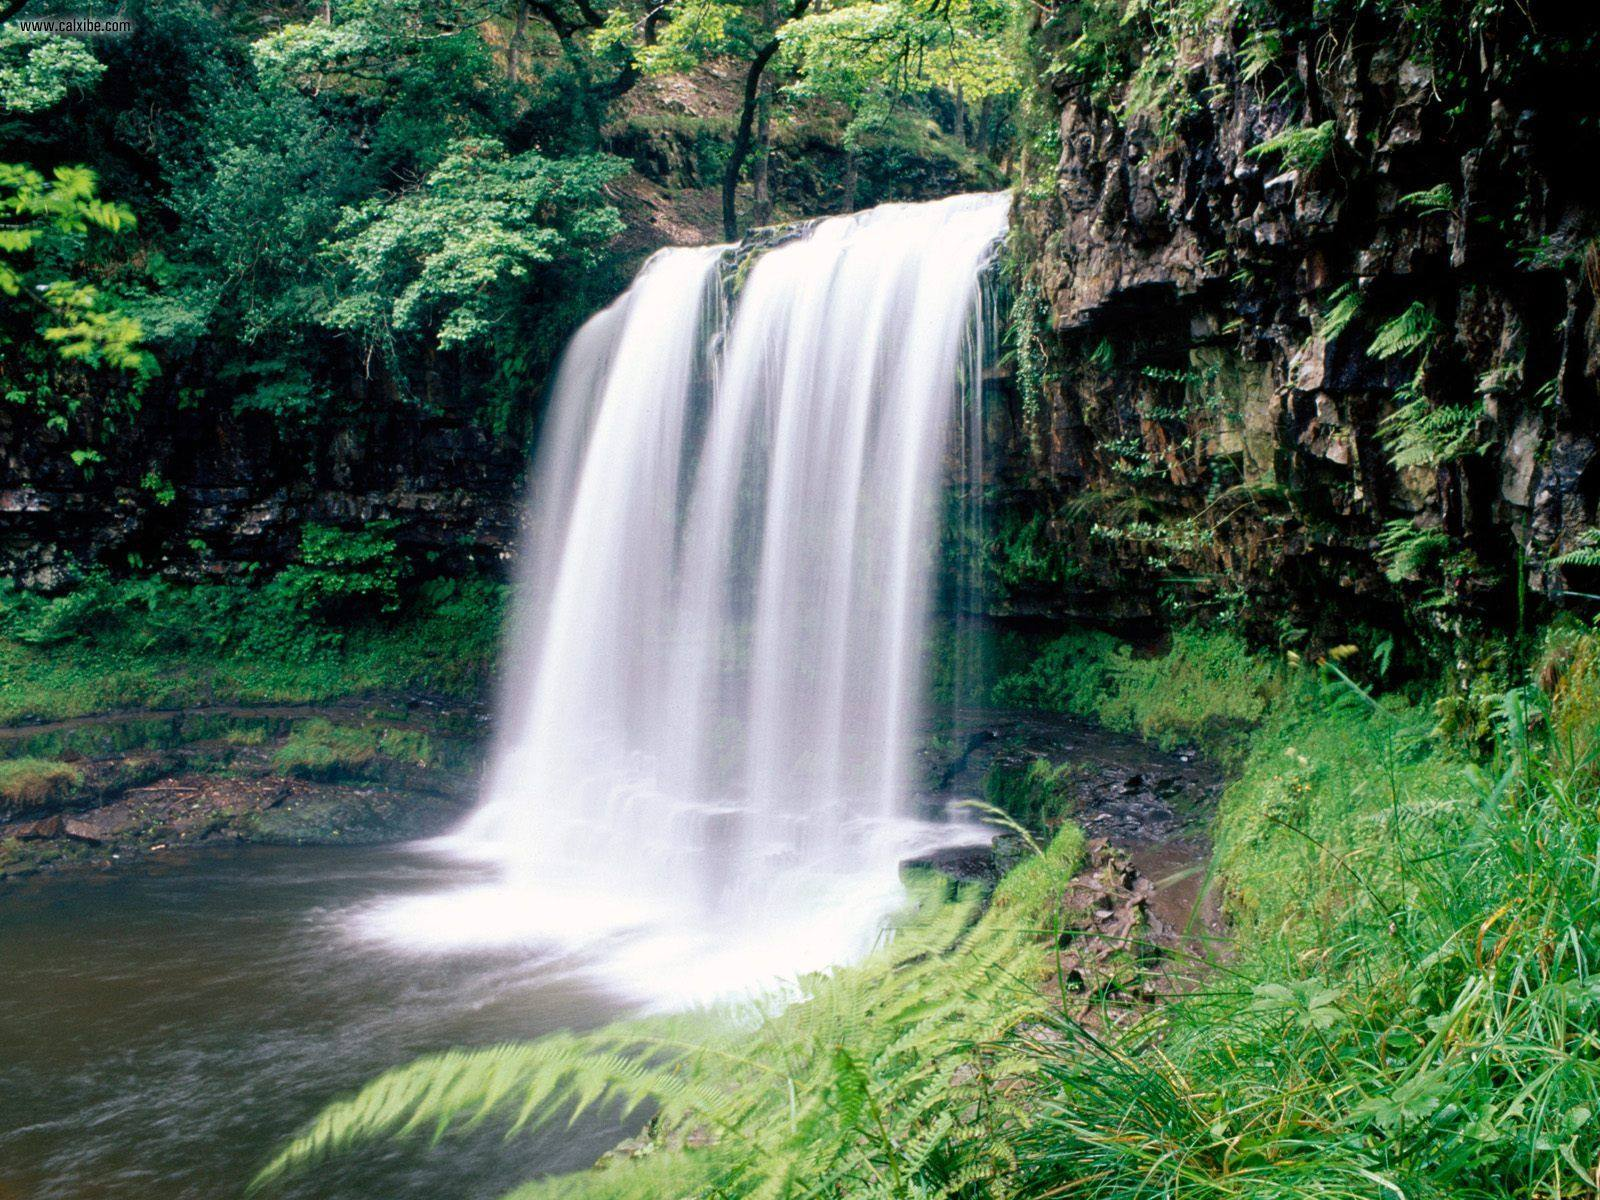 Wales Self Drive Vacations - Brecon Beacons National Park